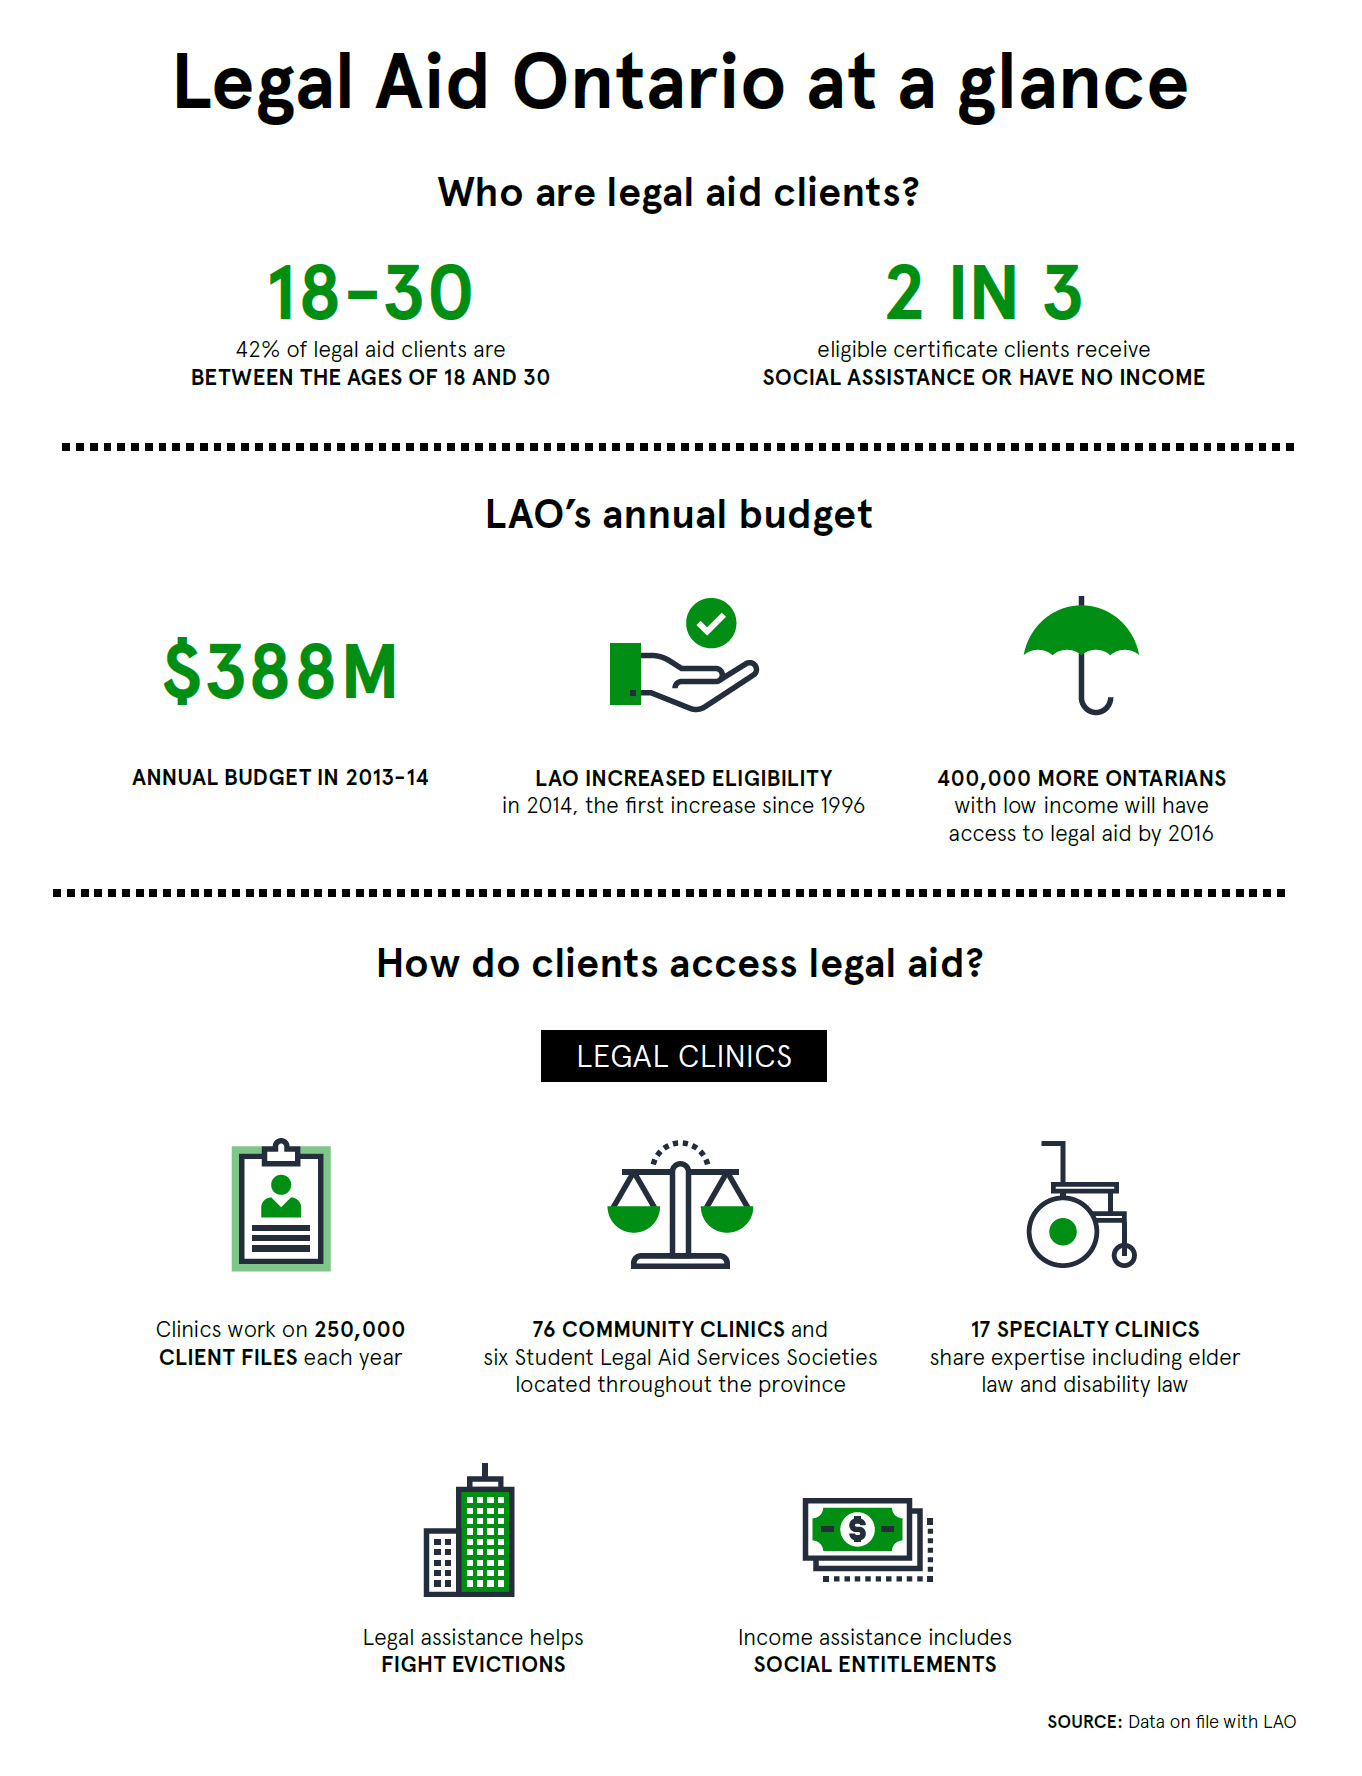 A 2-part infographic titled Legal Aid Ontario at a glance that provides an overview of who legal aid clients are, Legal Aid Ontario's annual budget, and how clients access legal aid. This is part 1.  				42% of legal aid clients are between the ages of 18 and 30, and 2 in 3 eligible certificate clients receive social assistance or have no income.  				Legal Aid Ontario had an annual budget of $388 million in the fiscal year 2013/2014, and Legal Aid Ontario increased eligibility in 2014. The 2014 increase was the first increase since 1996. As a result, 400,000 more Ontarians with low-income will have access to legal aid by 2016.  				There are many ways clients access legal aid. One way is through legal clinics. Legal clinics work on 250, 000 client files each year. There are 76 community clinics and six Student Legal Aid Services Societies located throughout the province, including 17 specialty clinics that share expertise like elder law and disability law.  				Legal assistance helps fight evictions, and income assistance includes social entitlements.